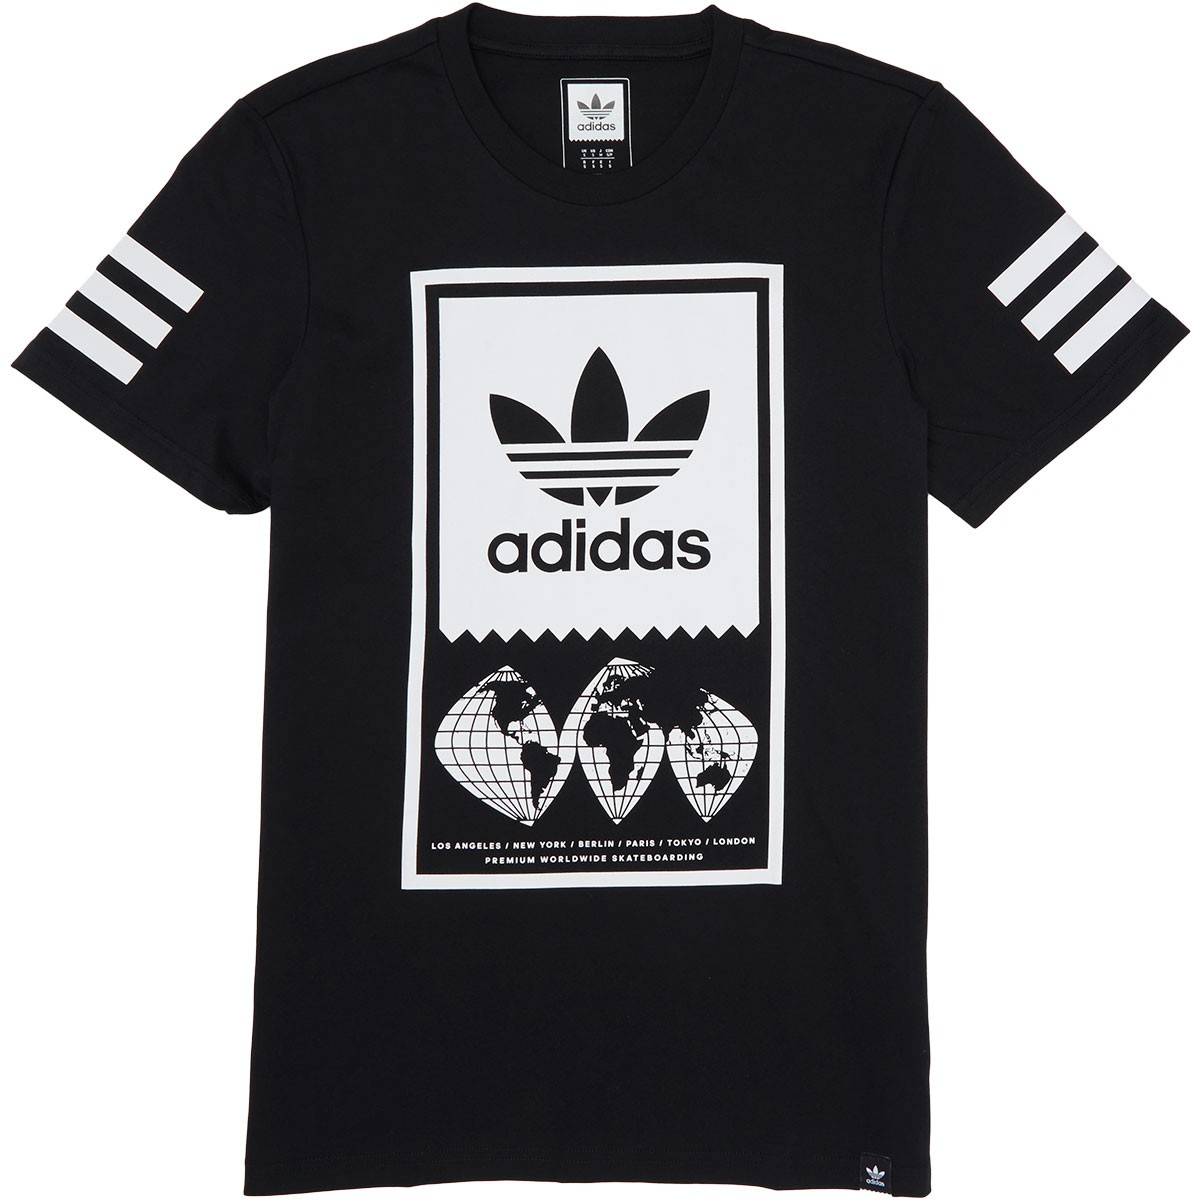 Adidas Global Blackwhite Shirt T Lockup XPRfX